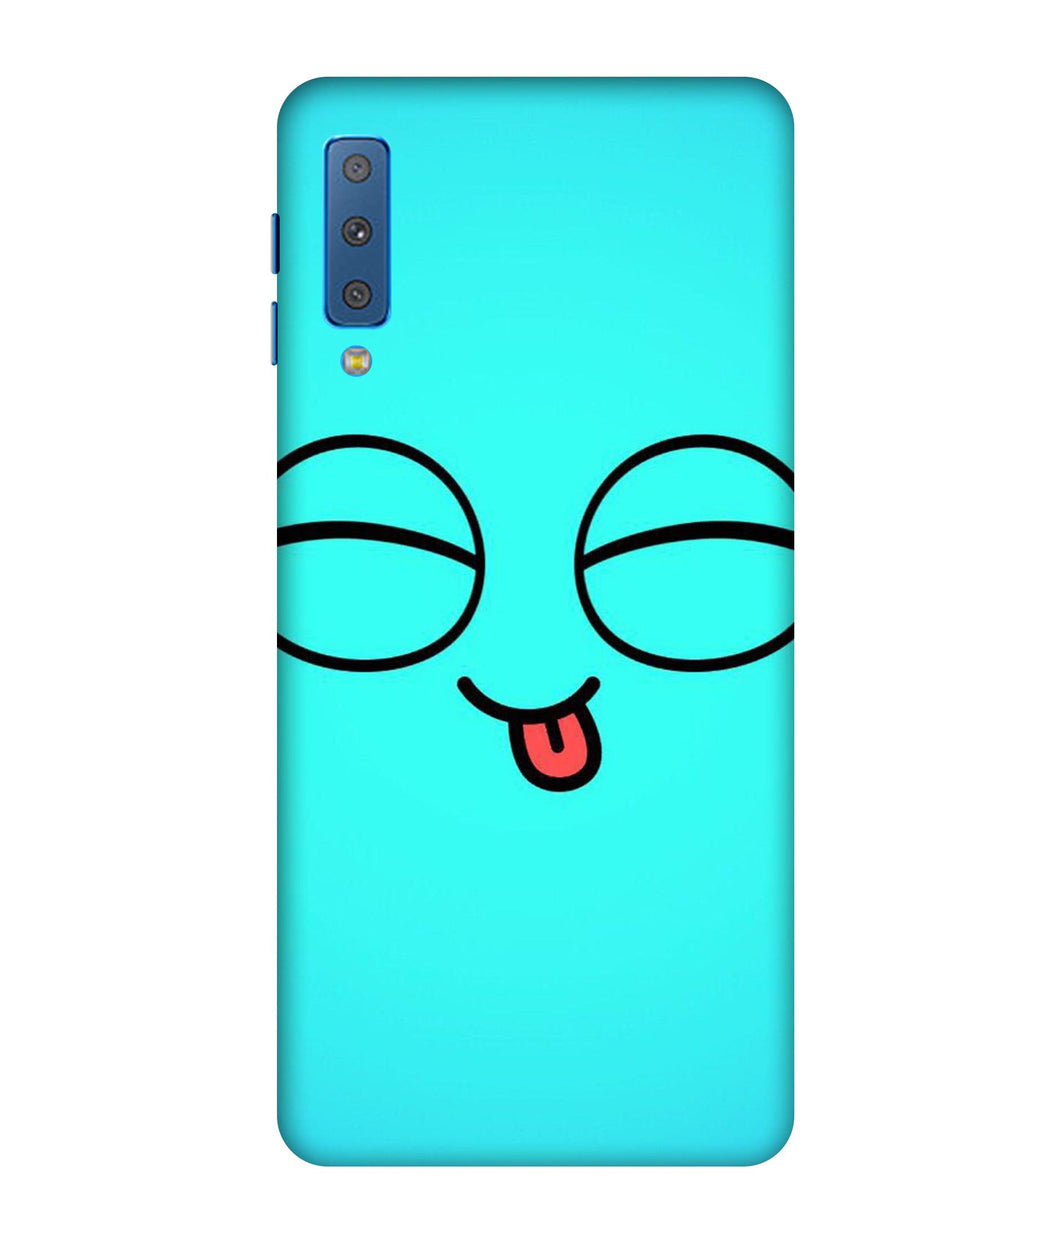 Samsung Galaxy A7-2018 Cute Awesome Mobile cover